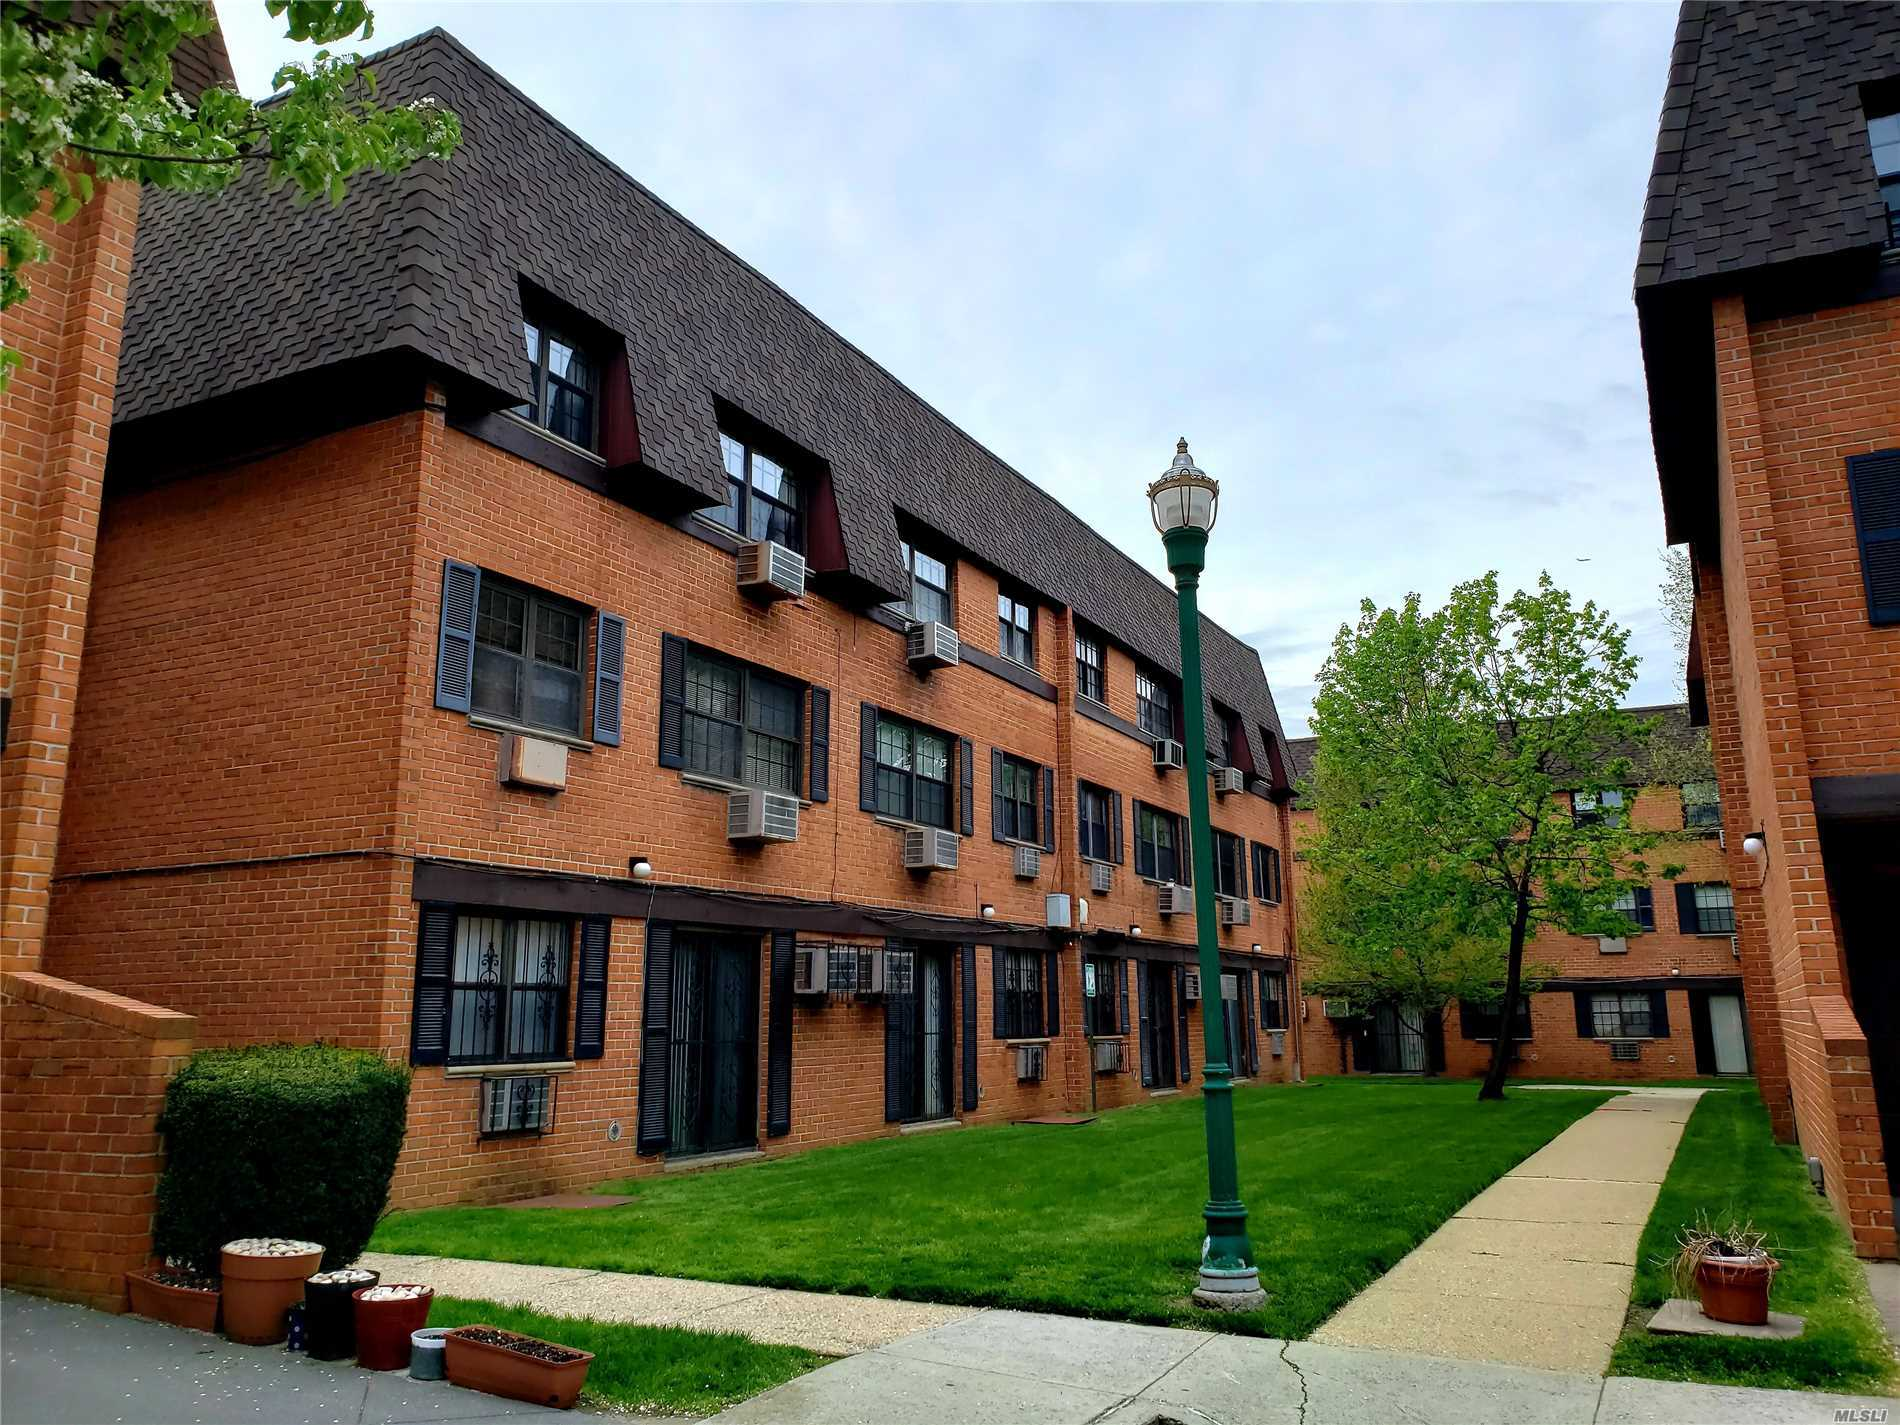 Meticulously Maintained 3 Bedrooms and 2 full bathrooms. Gracious Living Space, Expanded Master Bathroom, Skylight in Kitchen Blares Natural Sunlight, Laundry in unit, Closets & Wood Floors Throughout, School District #26. Close To Major Highways, Ground Transportation Q27, Q30, Express Bus To Manhattan QM5. QM8, QM35, Shopping & Restaurants!!! One Parking Space Included